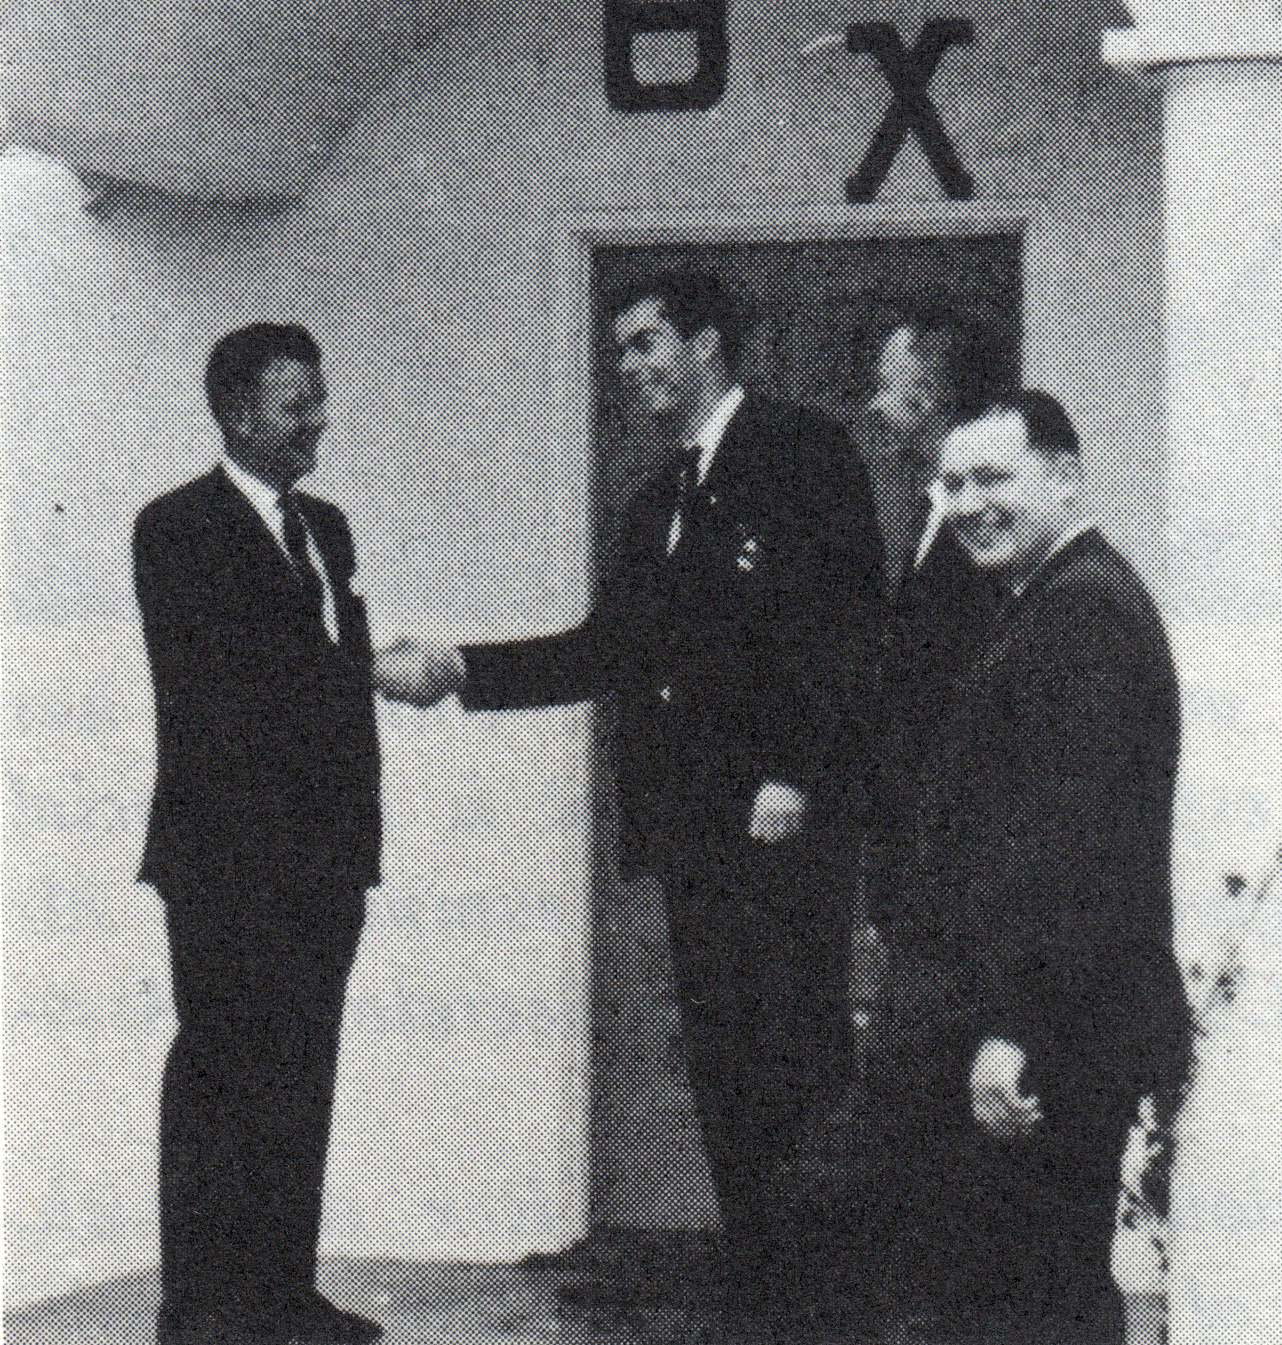 Hal Bartholomew, President of Zeta Xi Chapter, is shown welcoming some of the members of the installtion committee to the cpather house: L to R: Mark McColm (National President), Hal Bartholomew (President of Zeta Xi Chapter), Harry Anderson (Regional Counselor) and Howard R. Alter, Jr. (National Treasurer) - Nov. 19, 1967